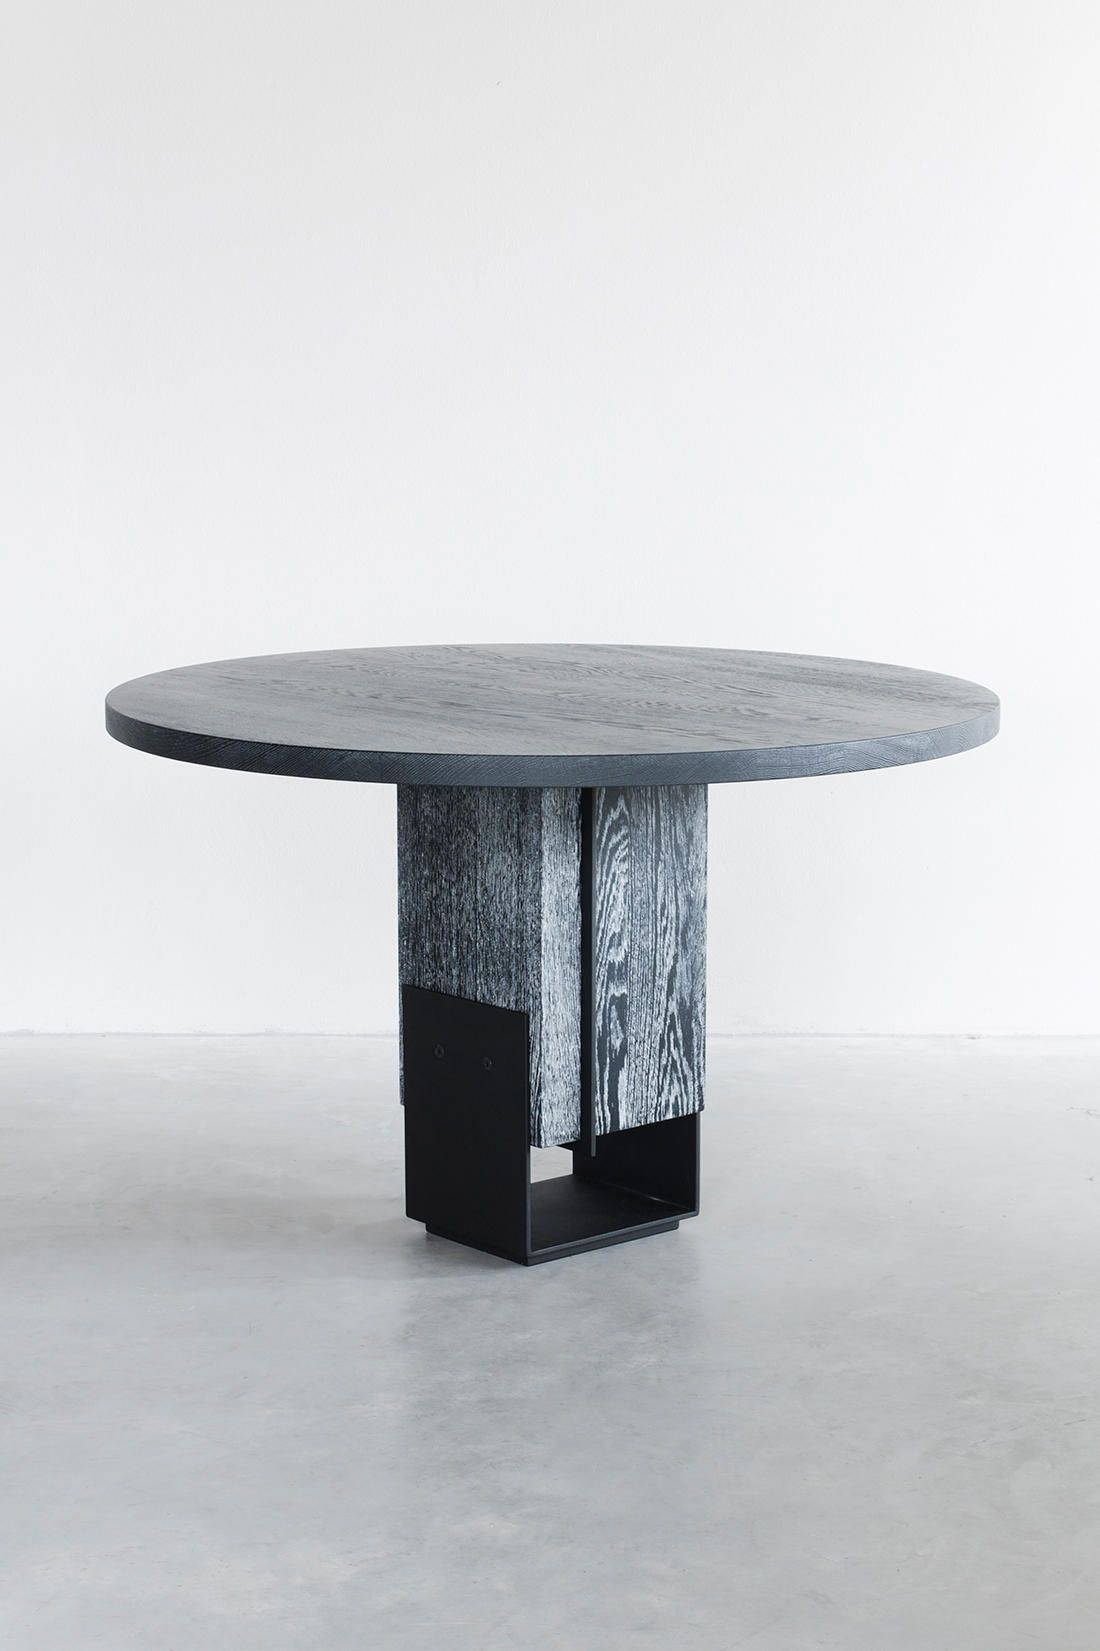 Kitale Dining Table Small Round Designer Tables From Van Rossum All Information High Resolution Images Cads Catalogues